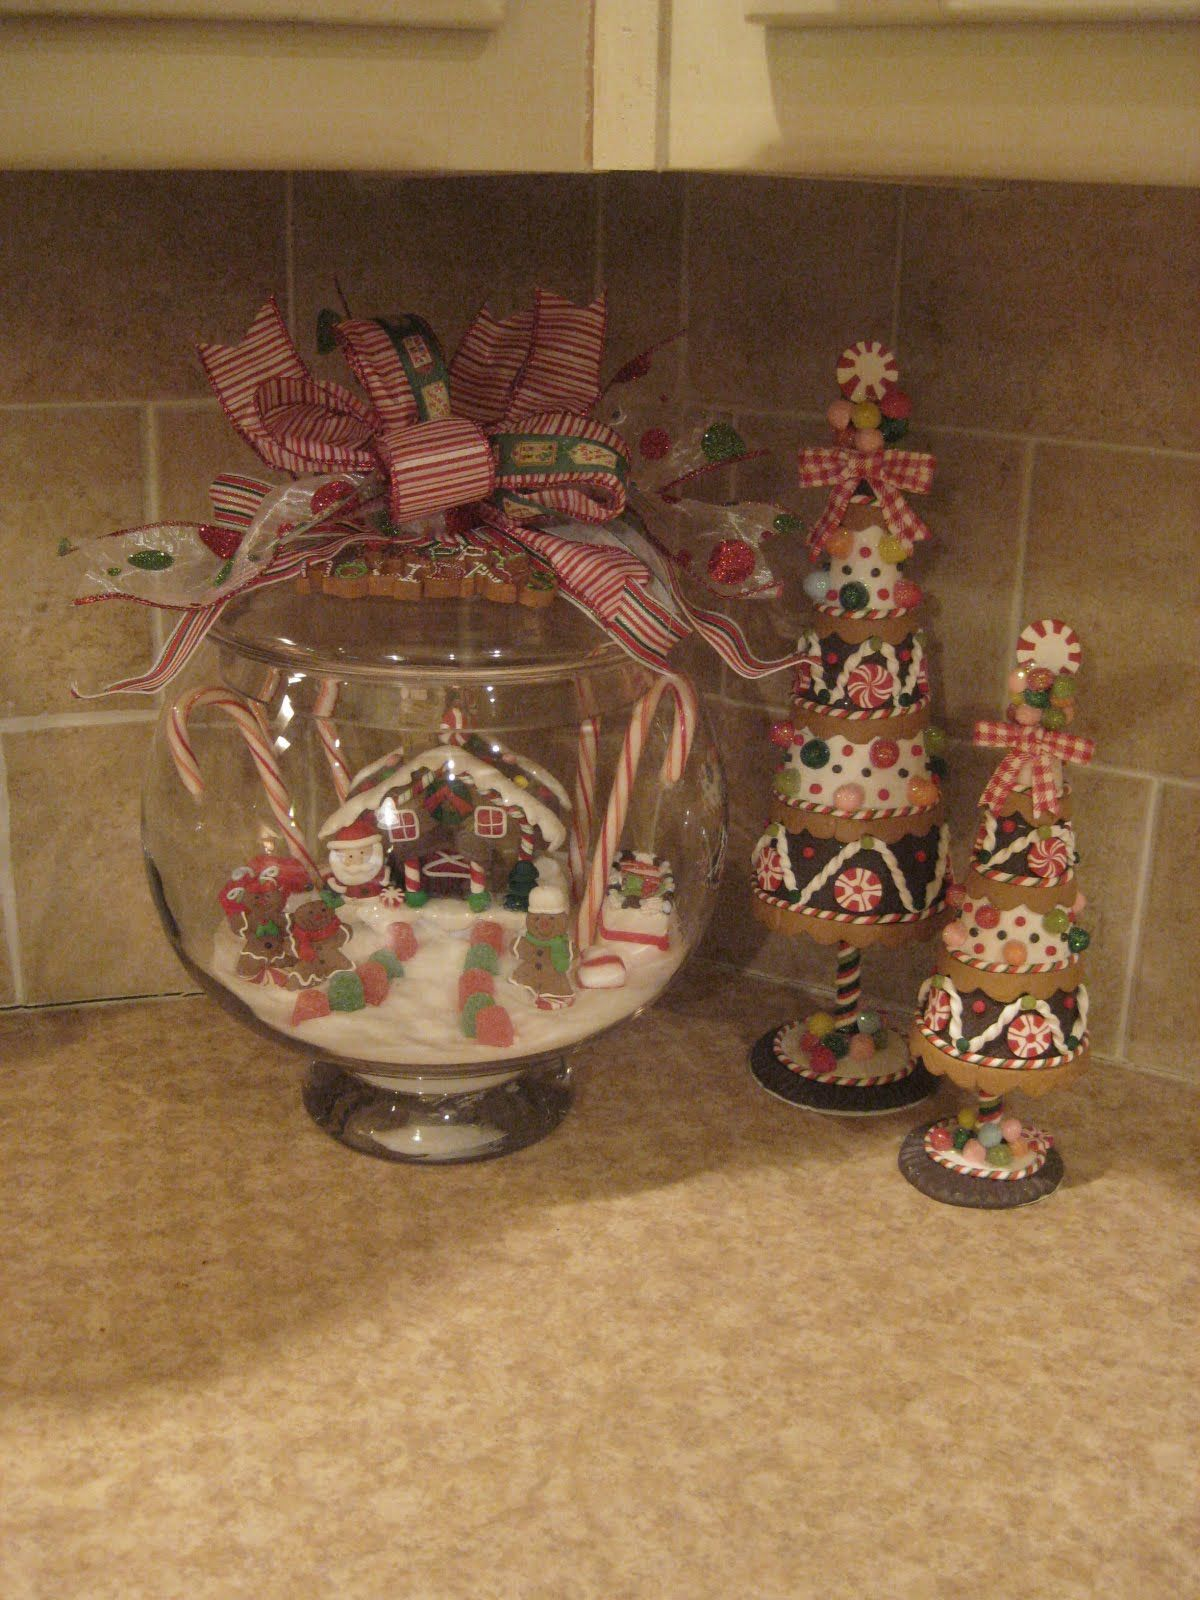 Gingerbread Kitchen Decorations Kitchen Design Photos Country Christmas Decorations Gingerbread Christmas Decor Christmas Decorations